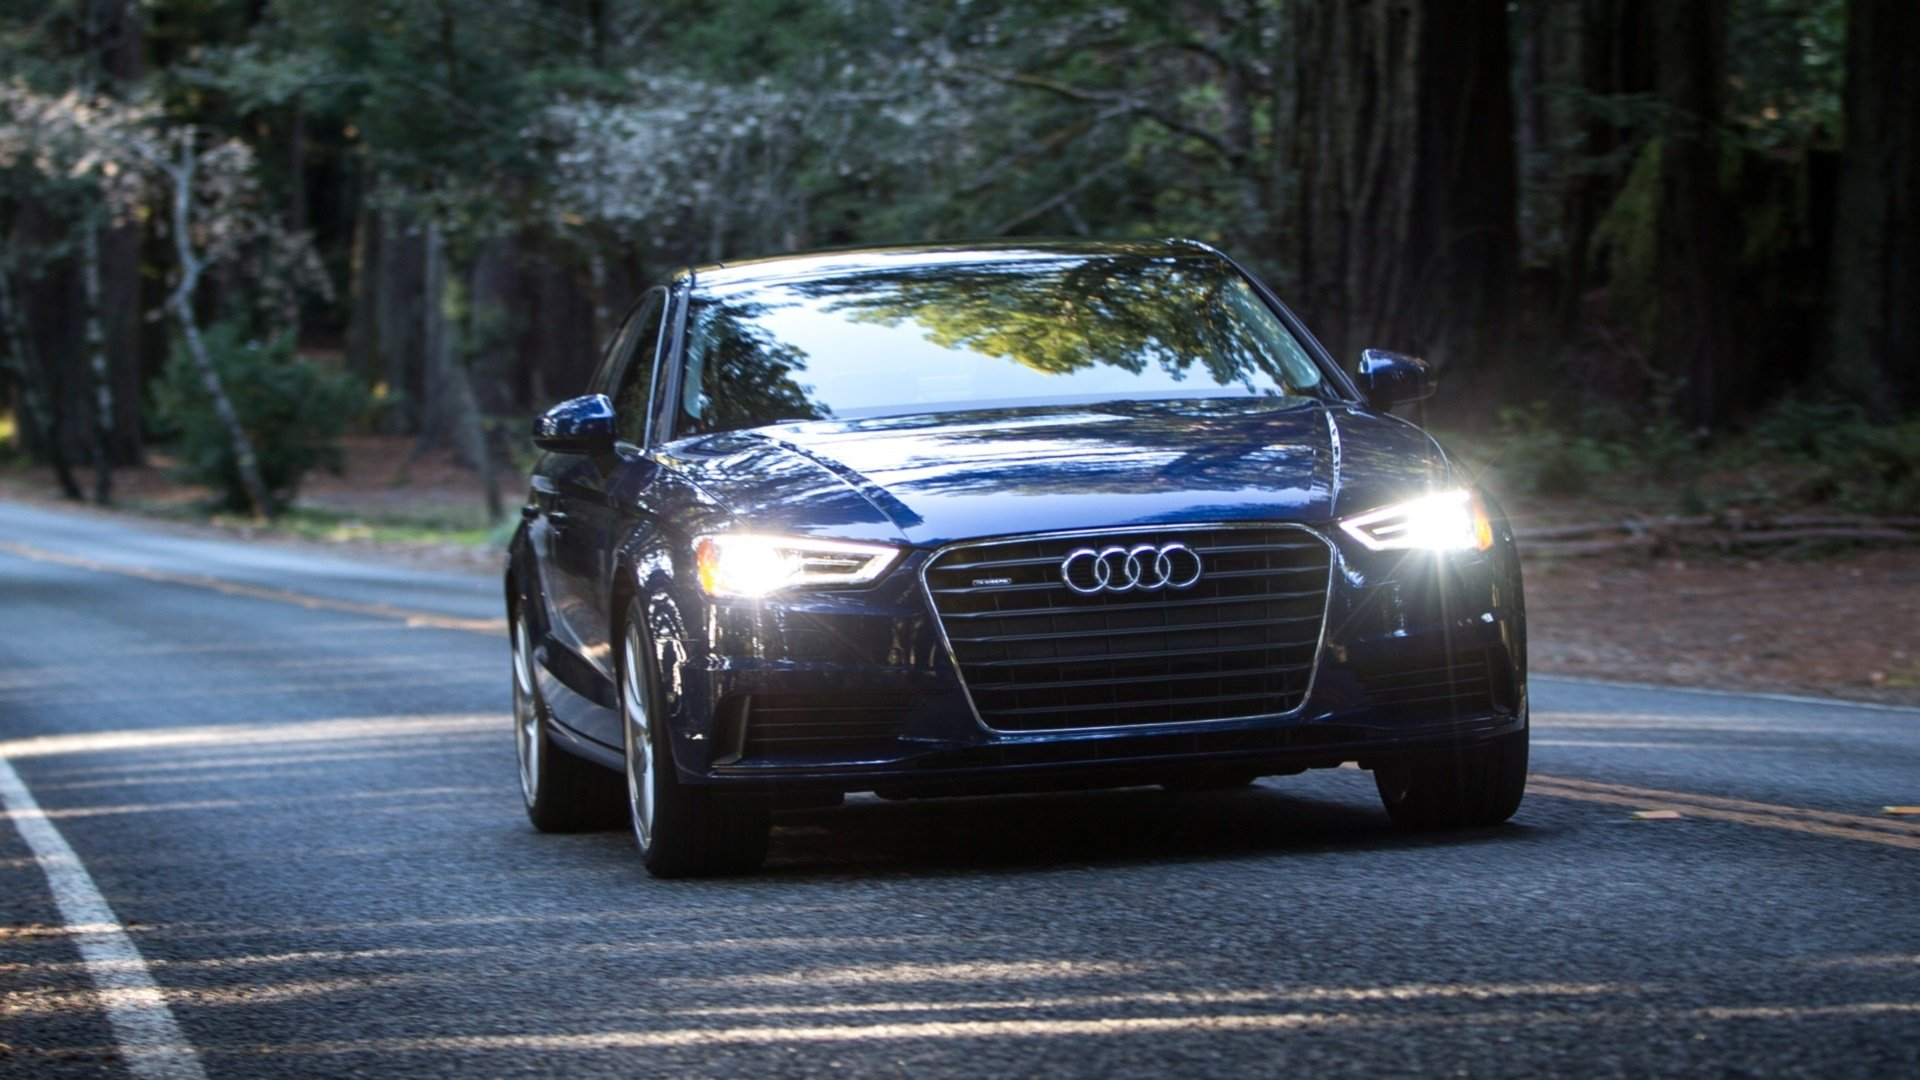 44 Audi A3 Hd Wallpapers Background Images Wallpaper Abyss